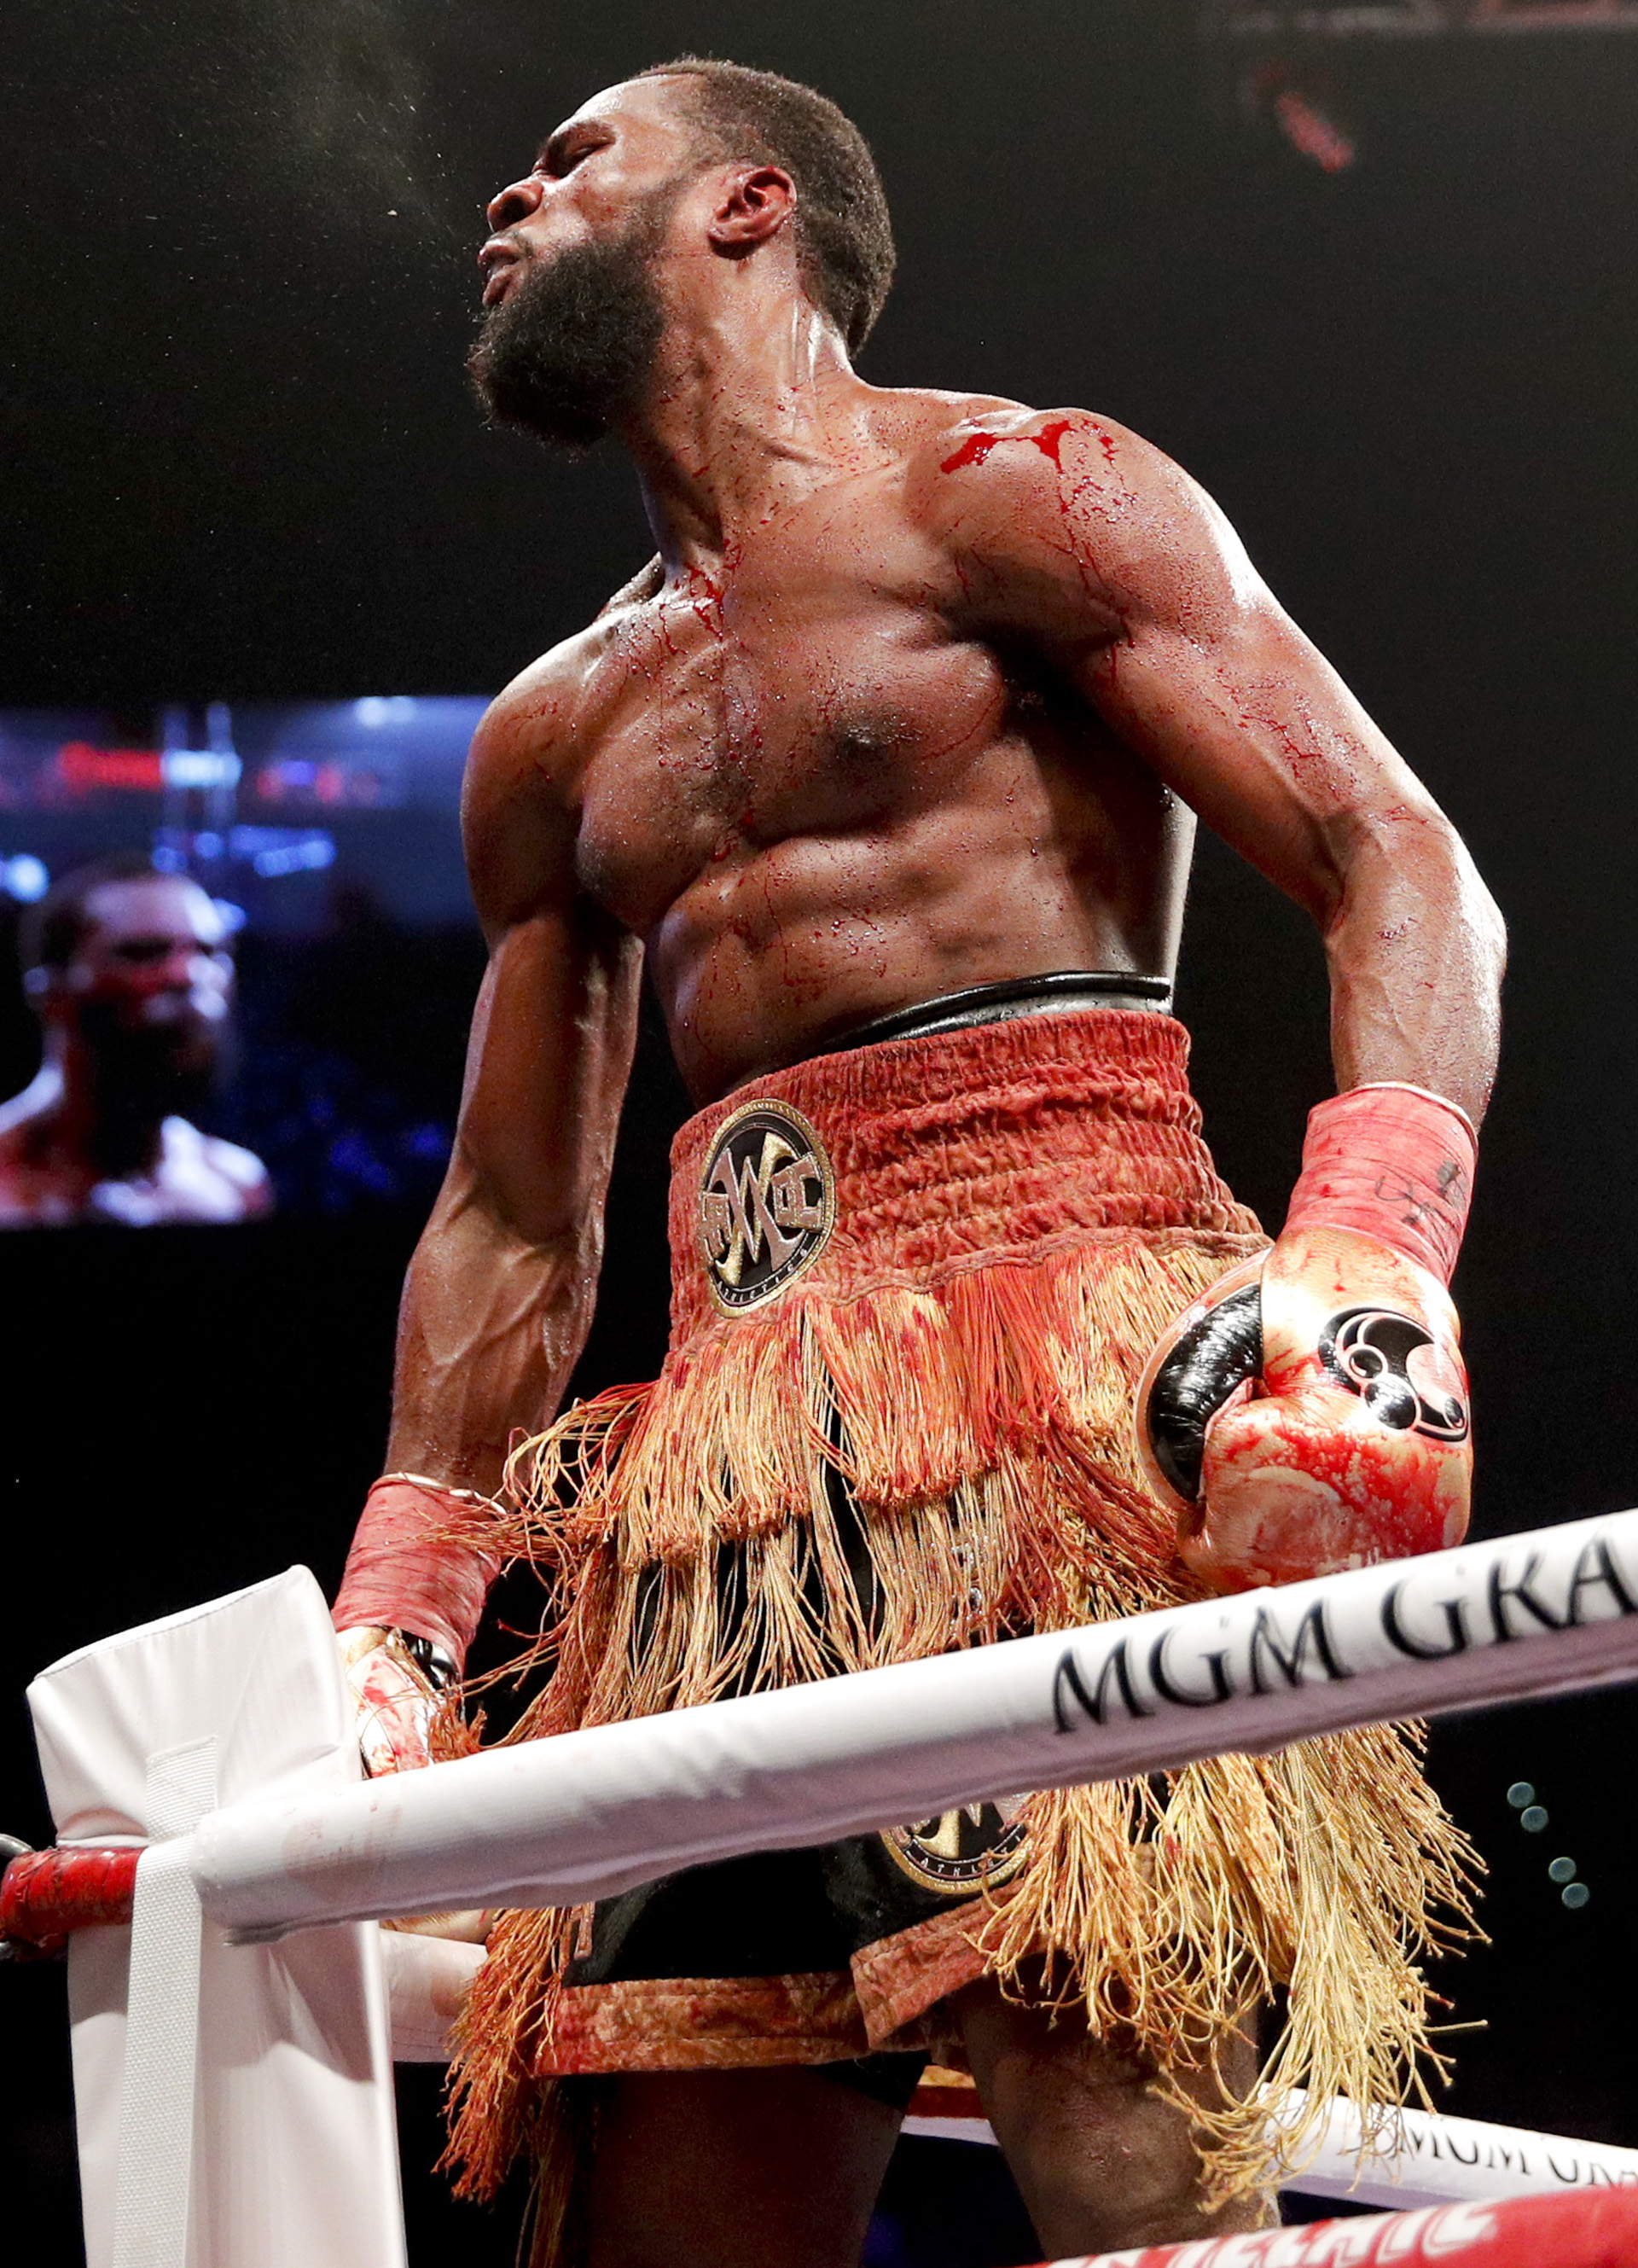 Marcus Browne celebrates his win against Badou Jack in the WBA interim light heavyweight title boxing bout Saturday, Jan. 19, 2019, in Las Vegas. (AP Photo/John Locher)